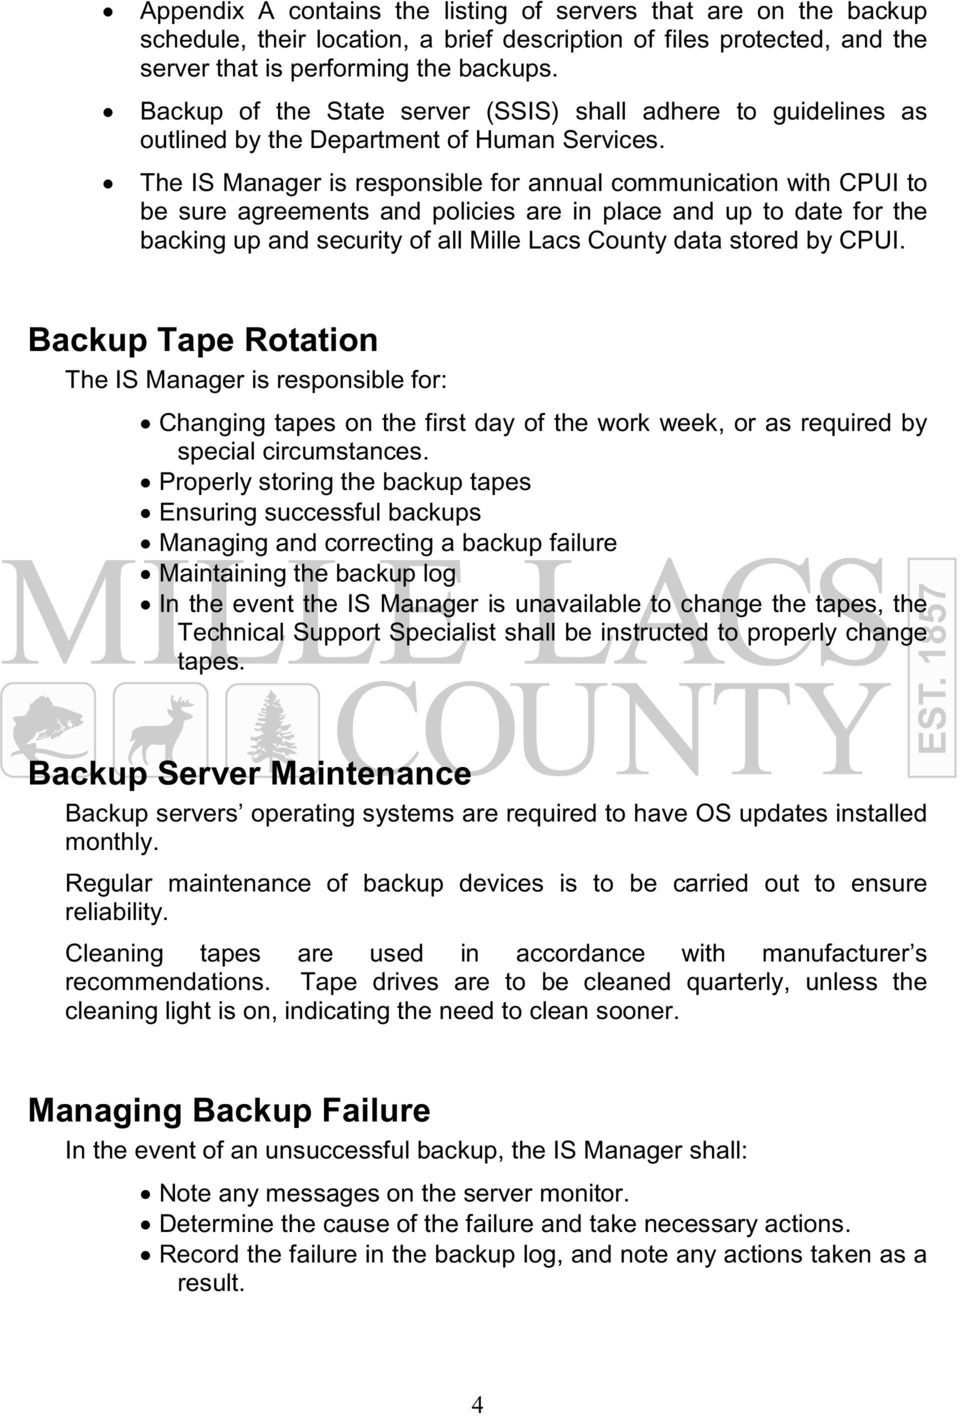 The IS Manager is responsible for annual communication with CPUI to be sure agreements and policies are in place and up to date for the backing up and security of all Mille Lacs County data stored by